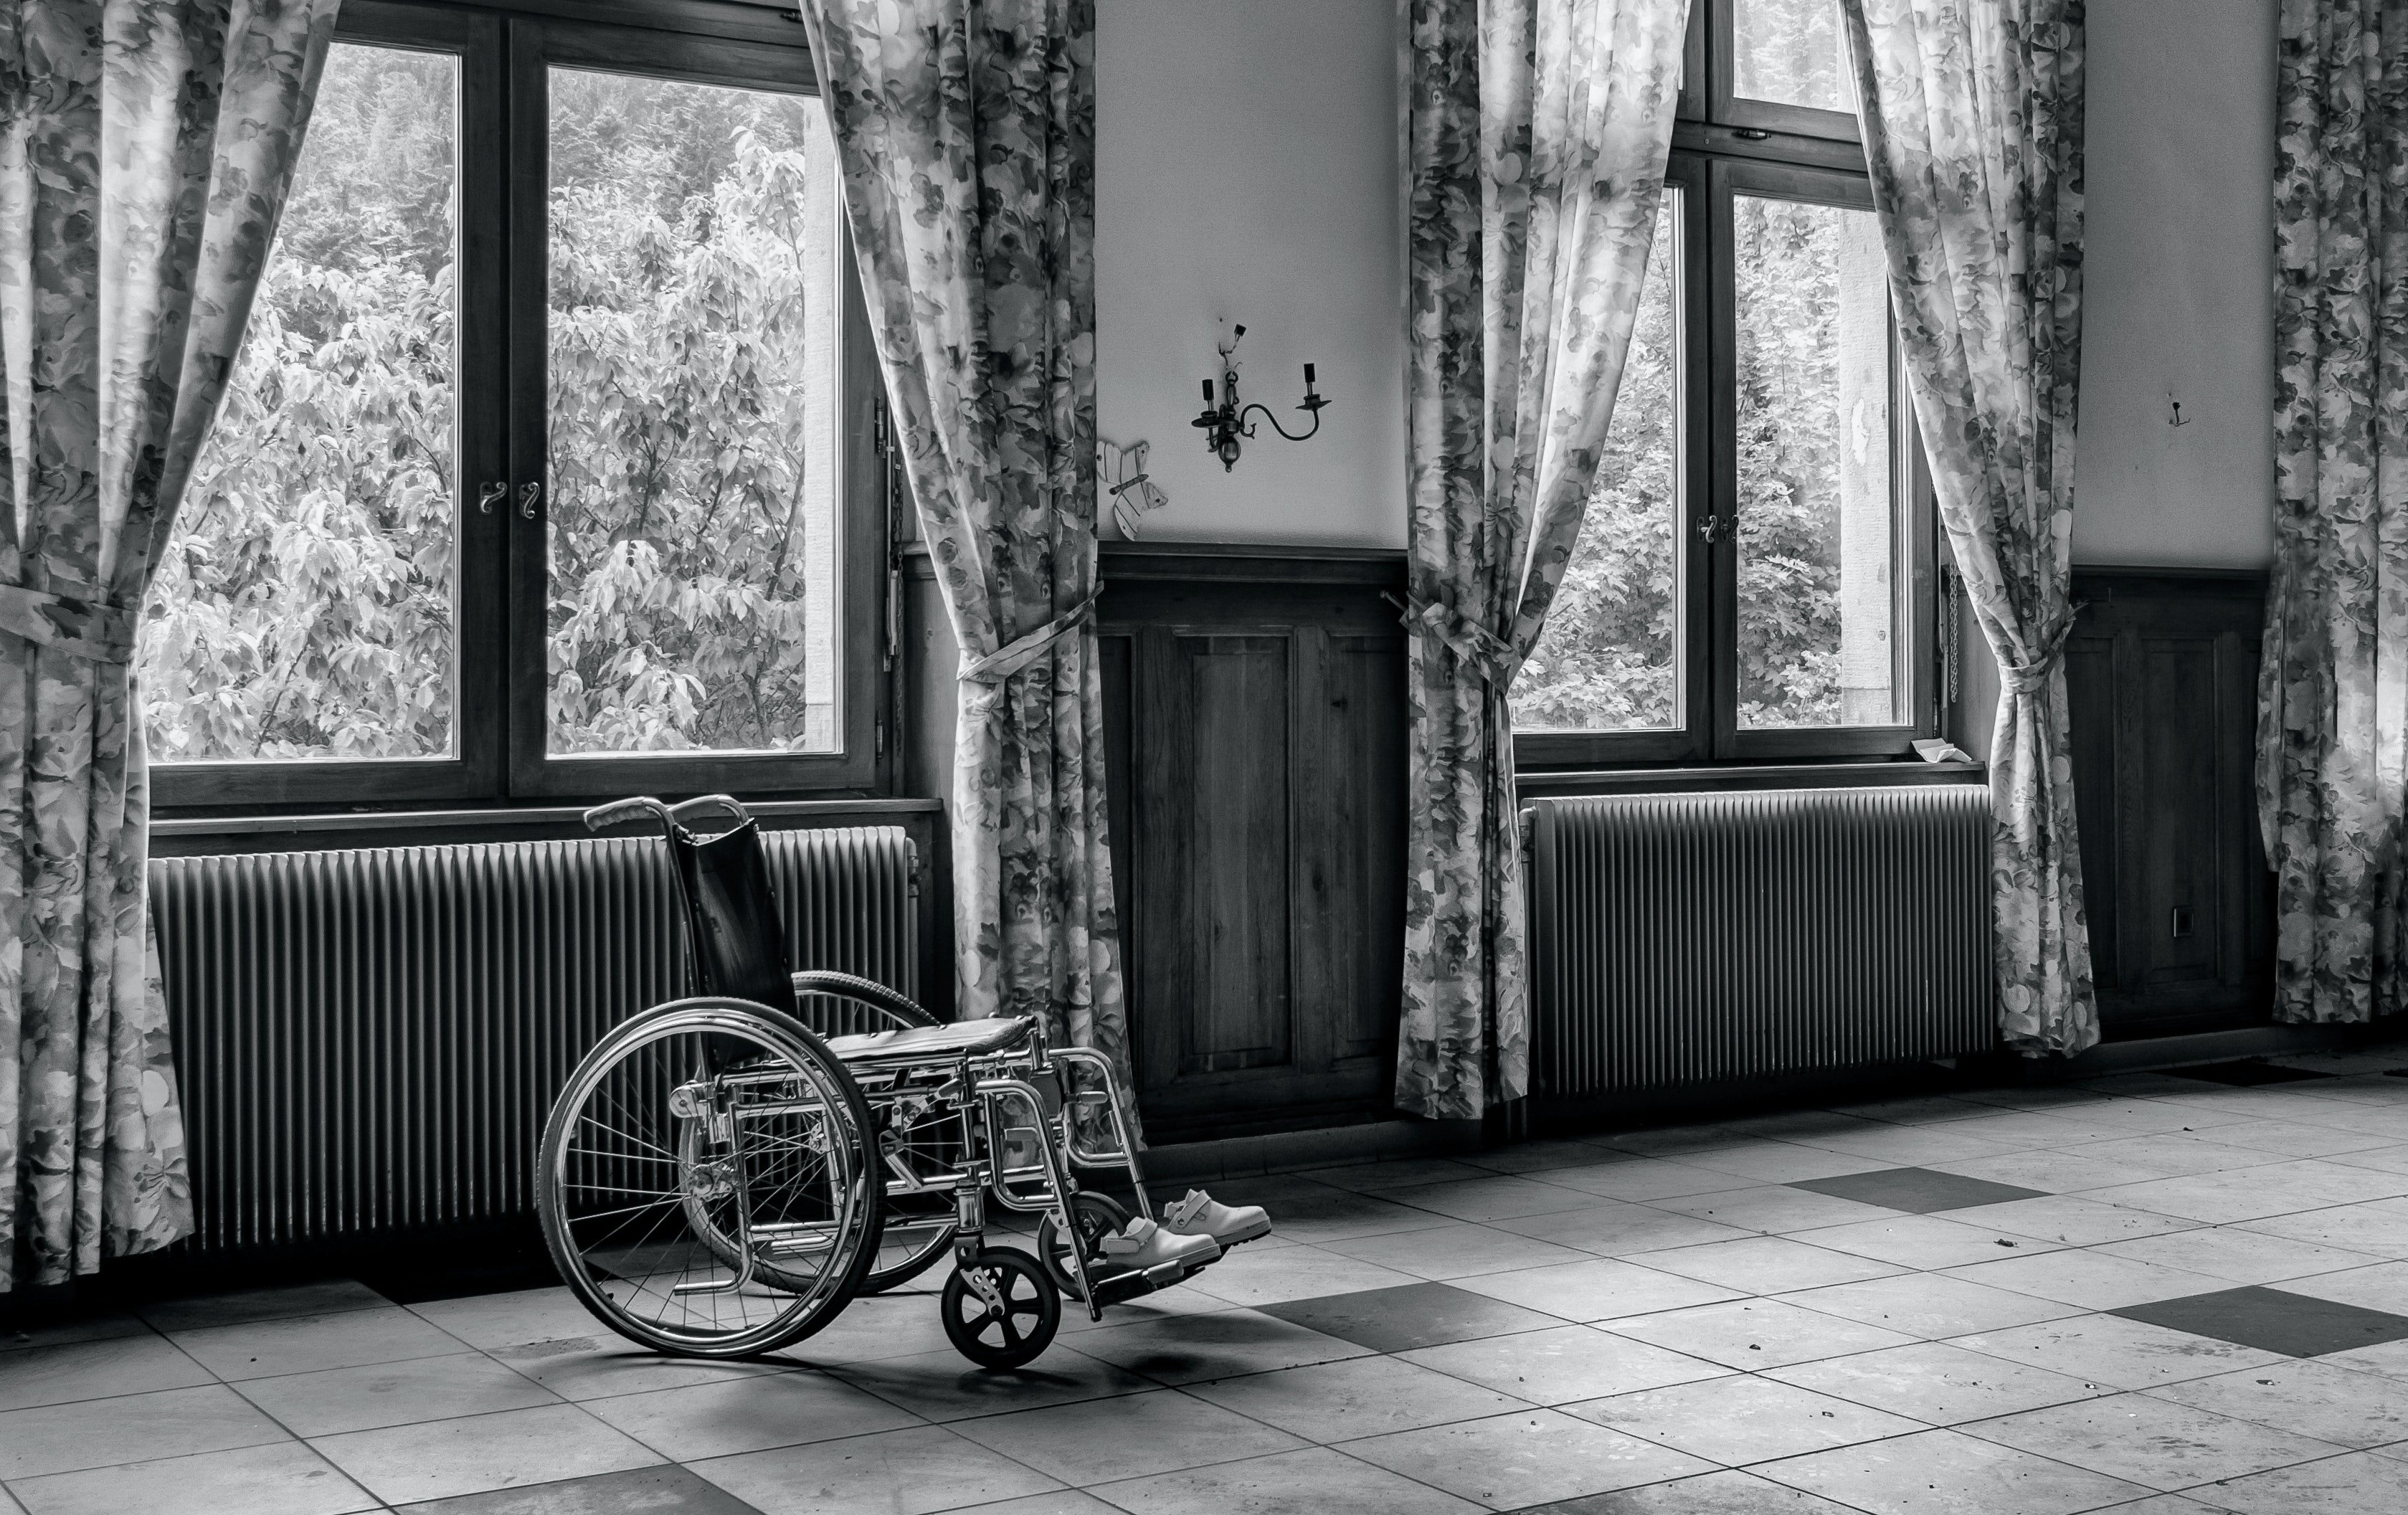 A wheelchair in a bedroom | Photo: Pexels